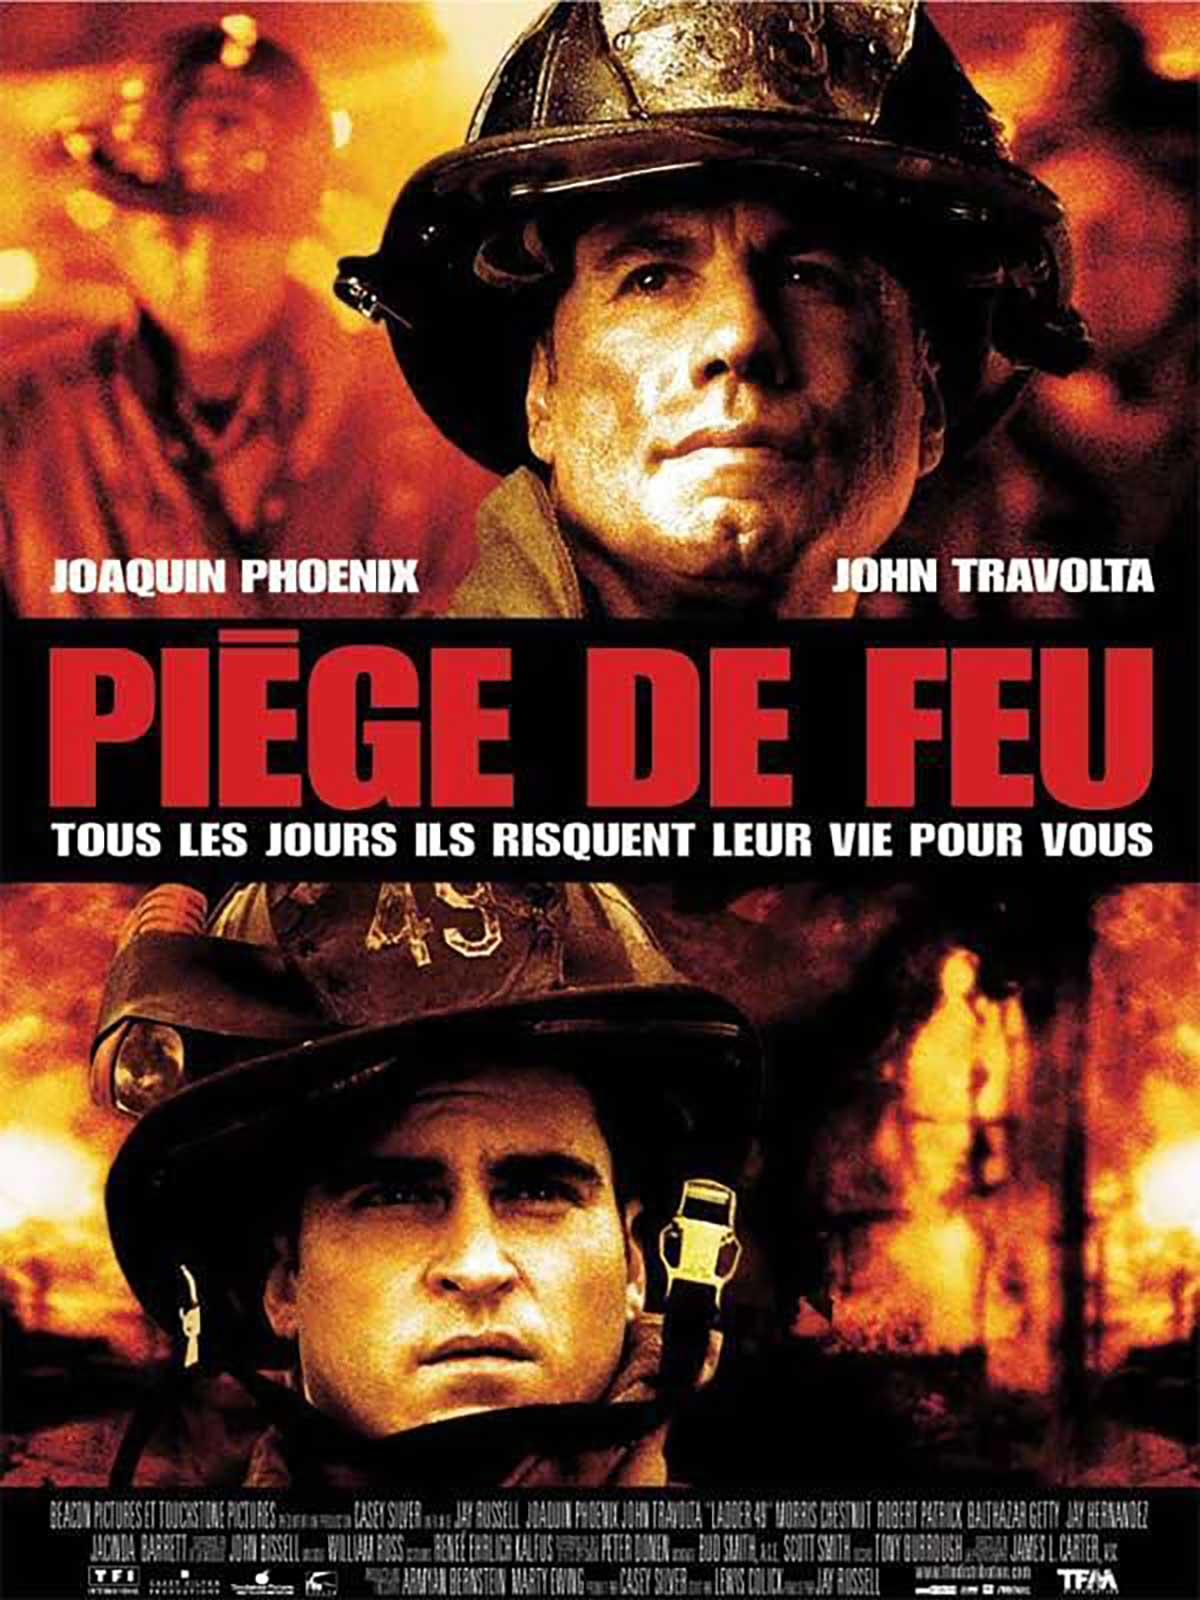 Affiche Leader ladder 49 piege feu disney touchstone